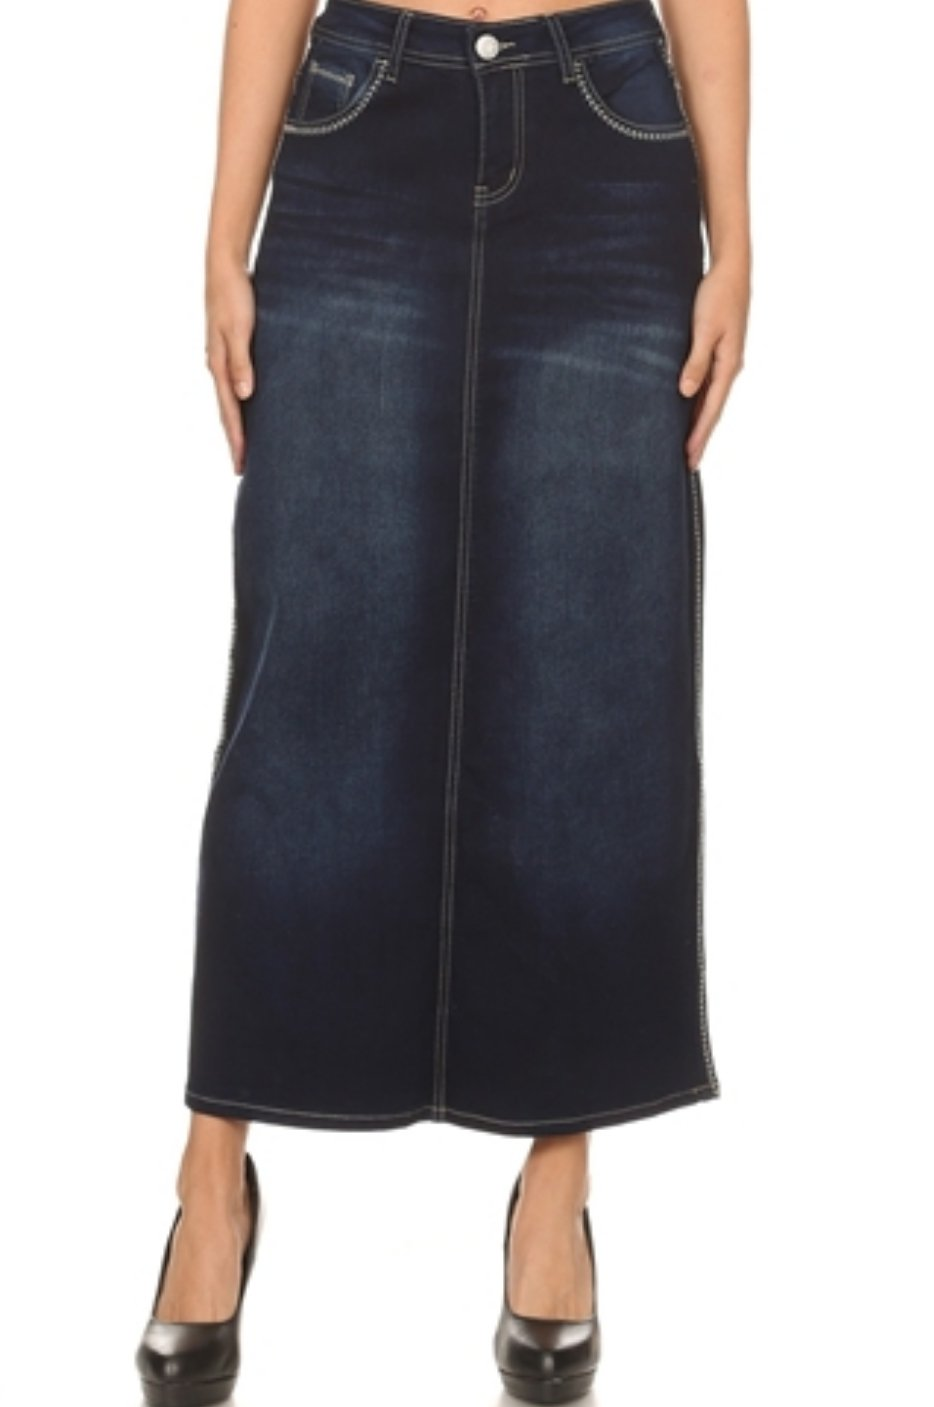 Dark Indigo Wash Long Denim Skirt with Embroidery  #87507